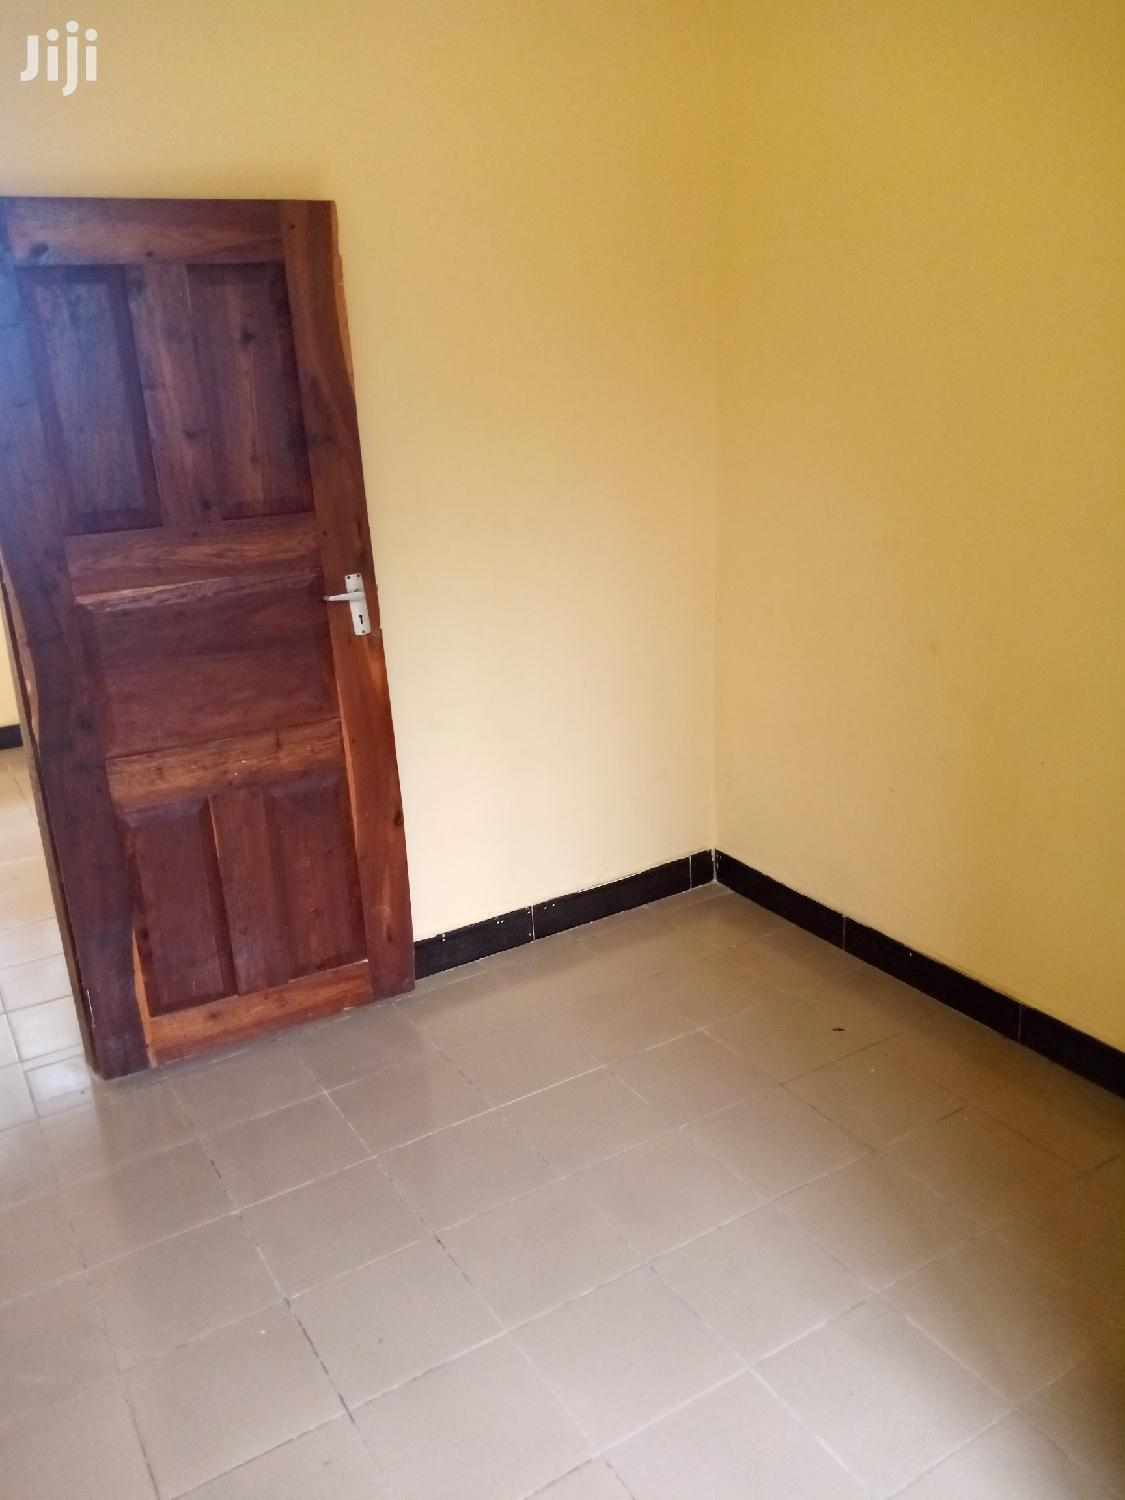 Single Bedroom House For Rent | Houses & Apartments For Rent for sale in Mbezi, Kinondoni, Tanzania